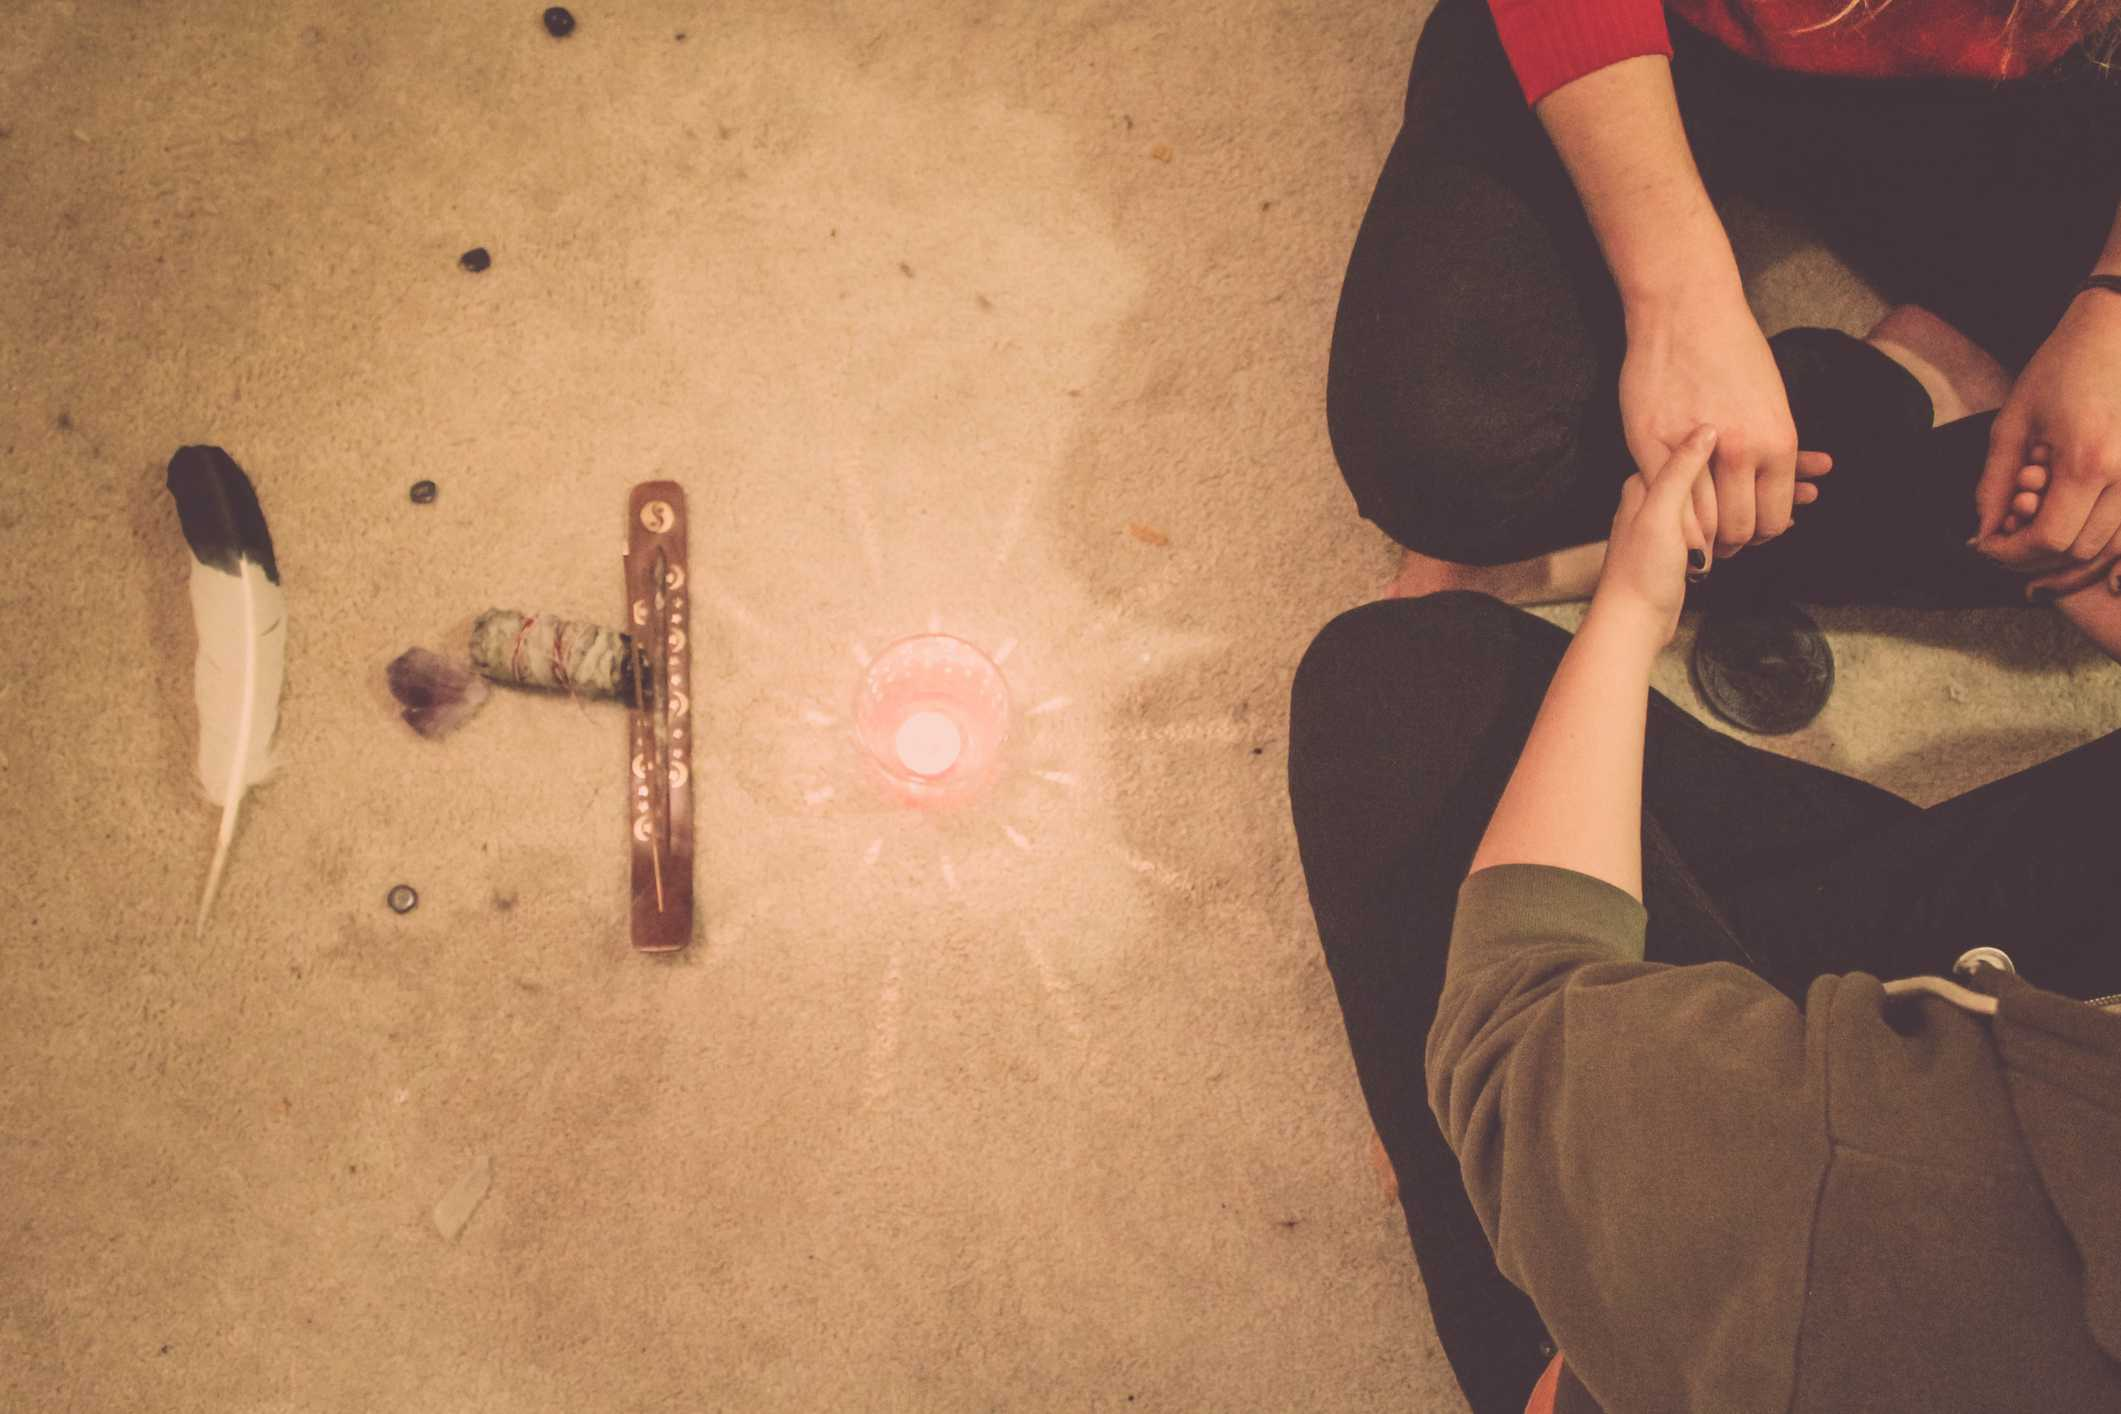 Man And Woman By Tea Light Candle On Rug During Wiccan Ceremony